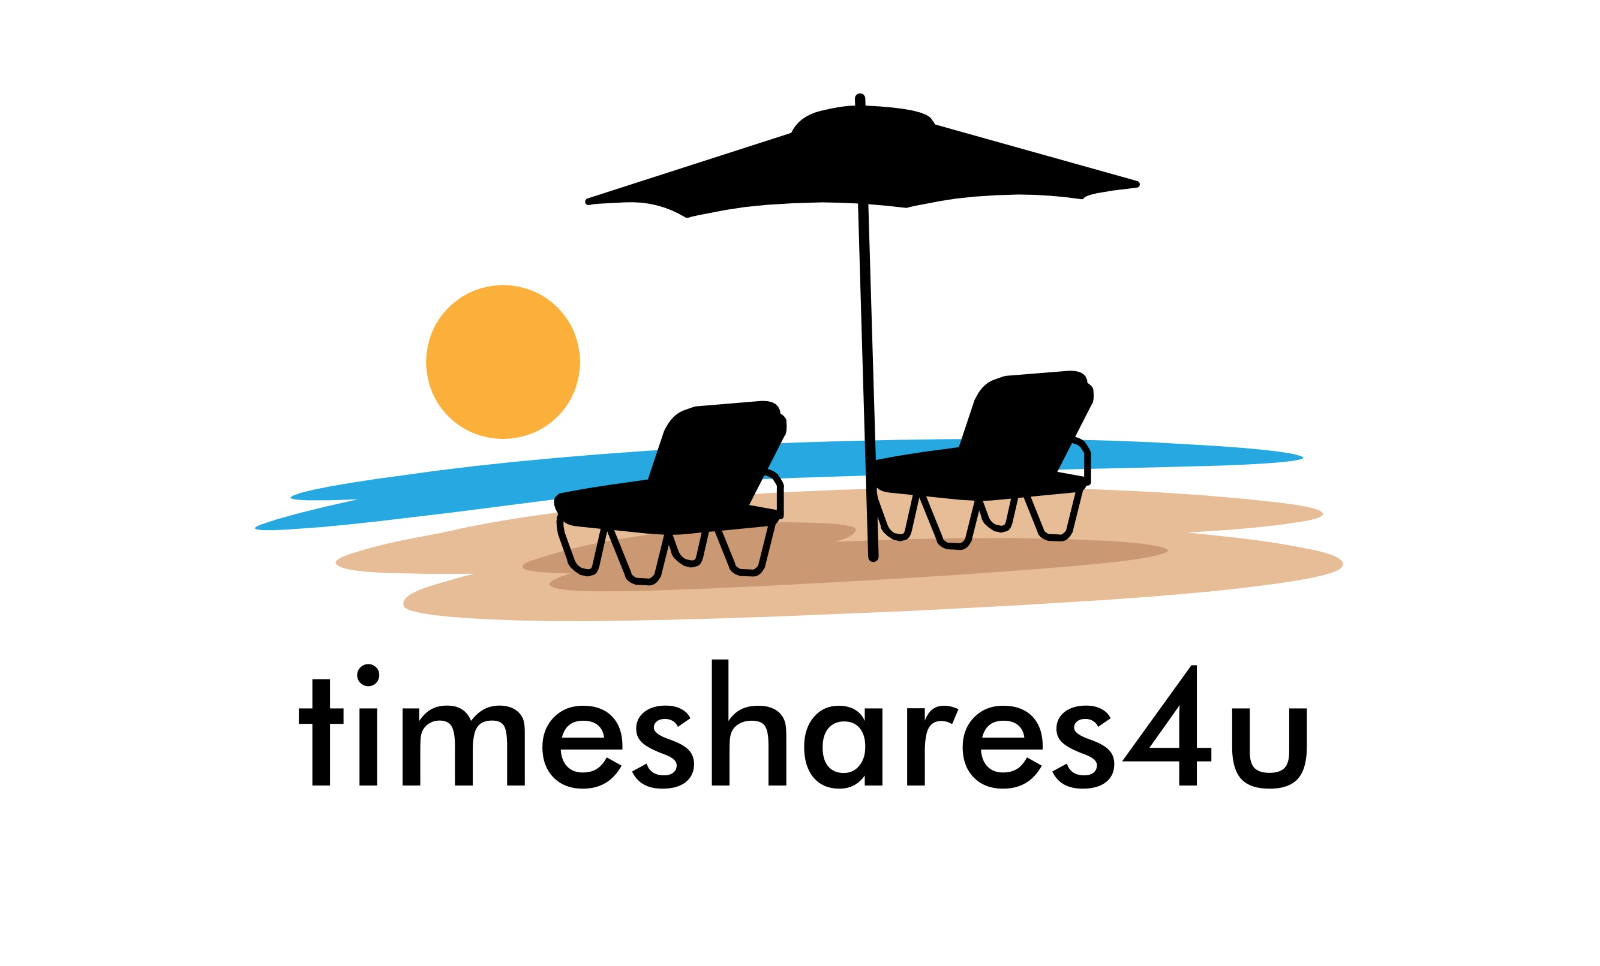 SILVER LAKE RESORT TIMESHARE 2B/2B 89,000 RCI PTS FREE 2019 USE KISSIMMEE, FL  - $1.29